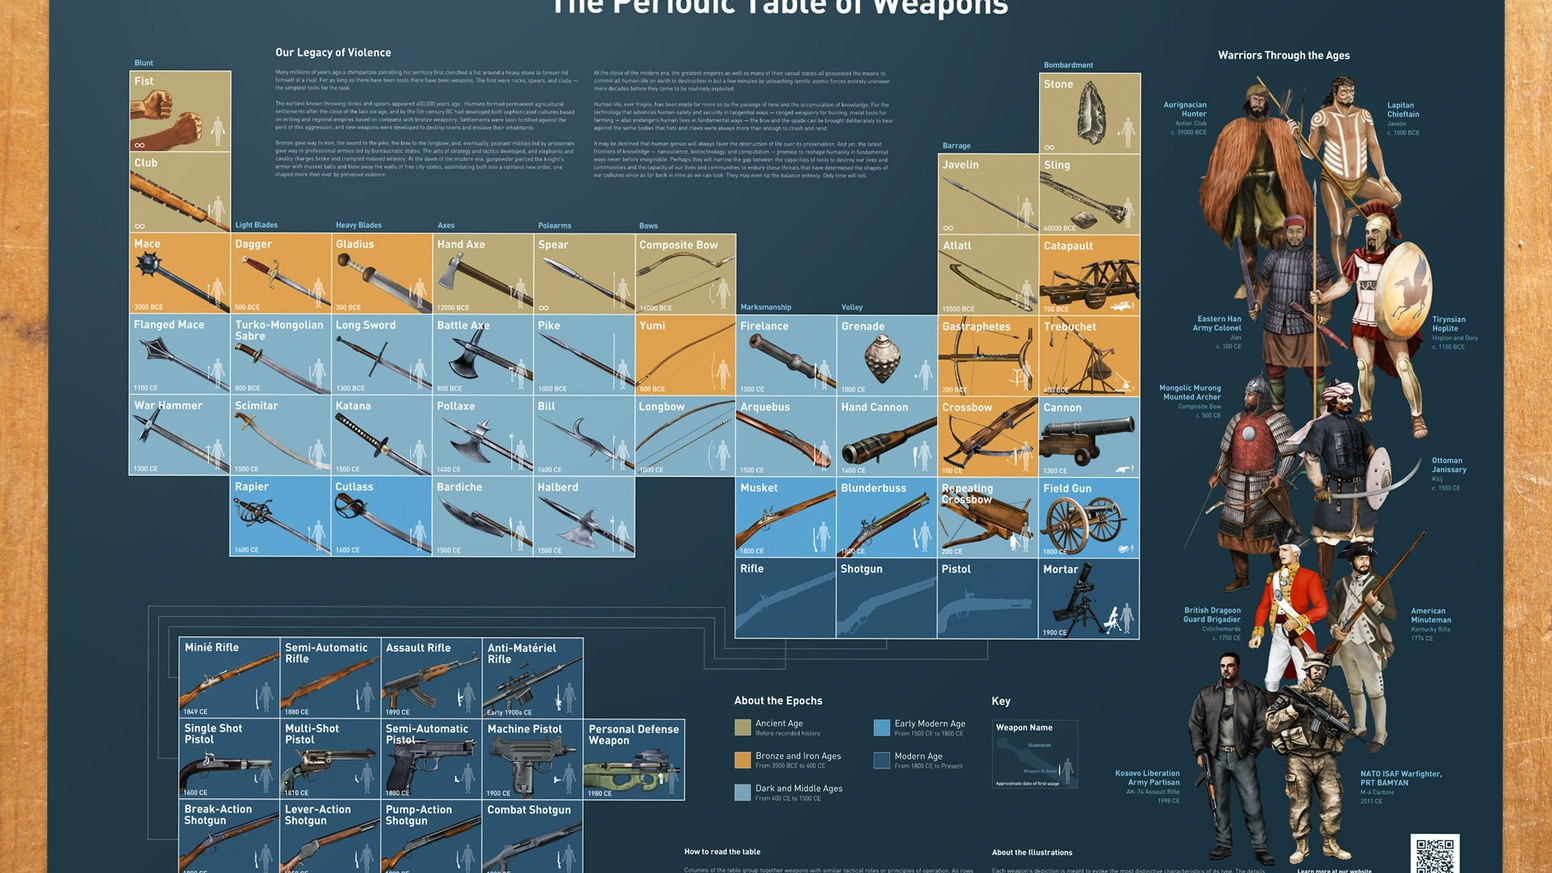 Periodic table of weapons poster by david barthwell kickstarter periodic table of weapons poster featuring 65 hand illustrated weapons and warriors sorted to offer new insight into the urtaz Choice Image